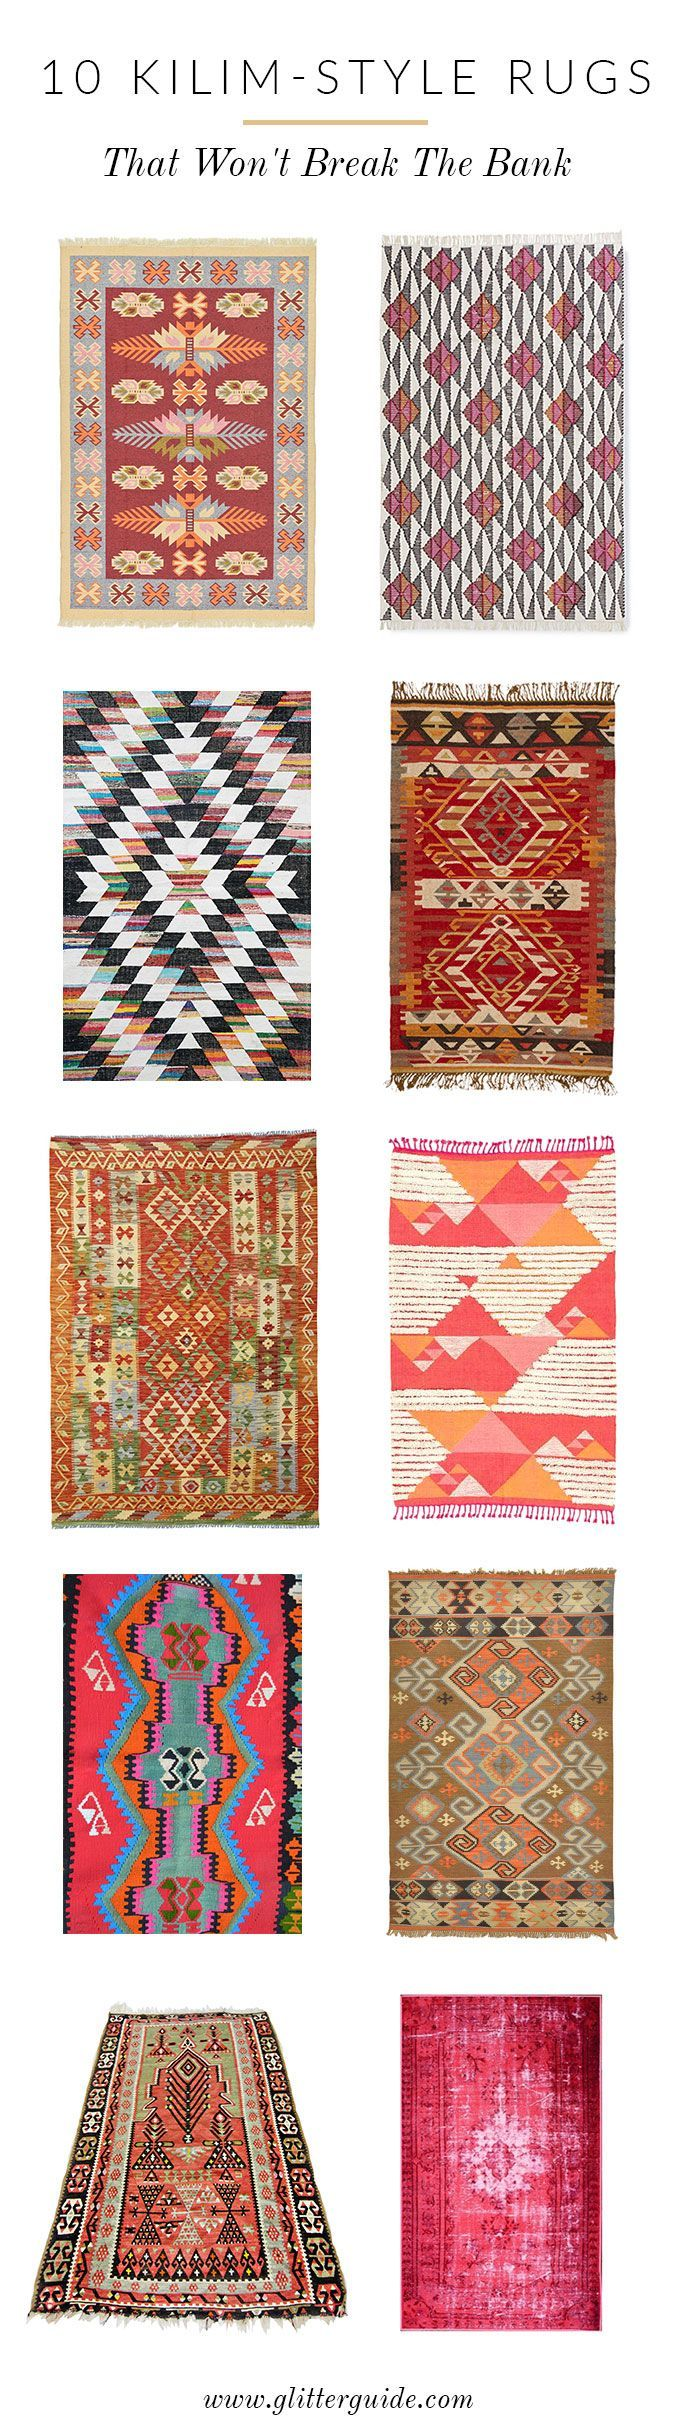 Loving kilim-style rugs these days. Here is where to save on this splurge-worthy...